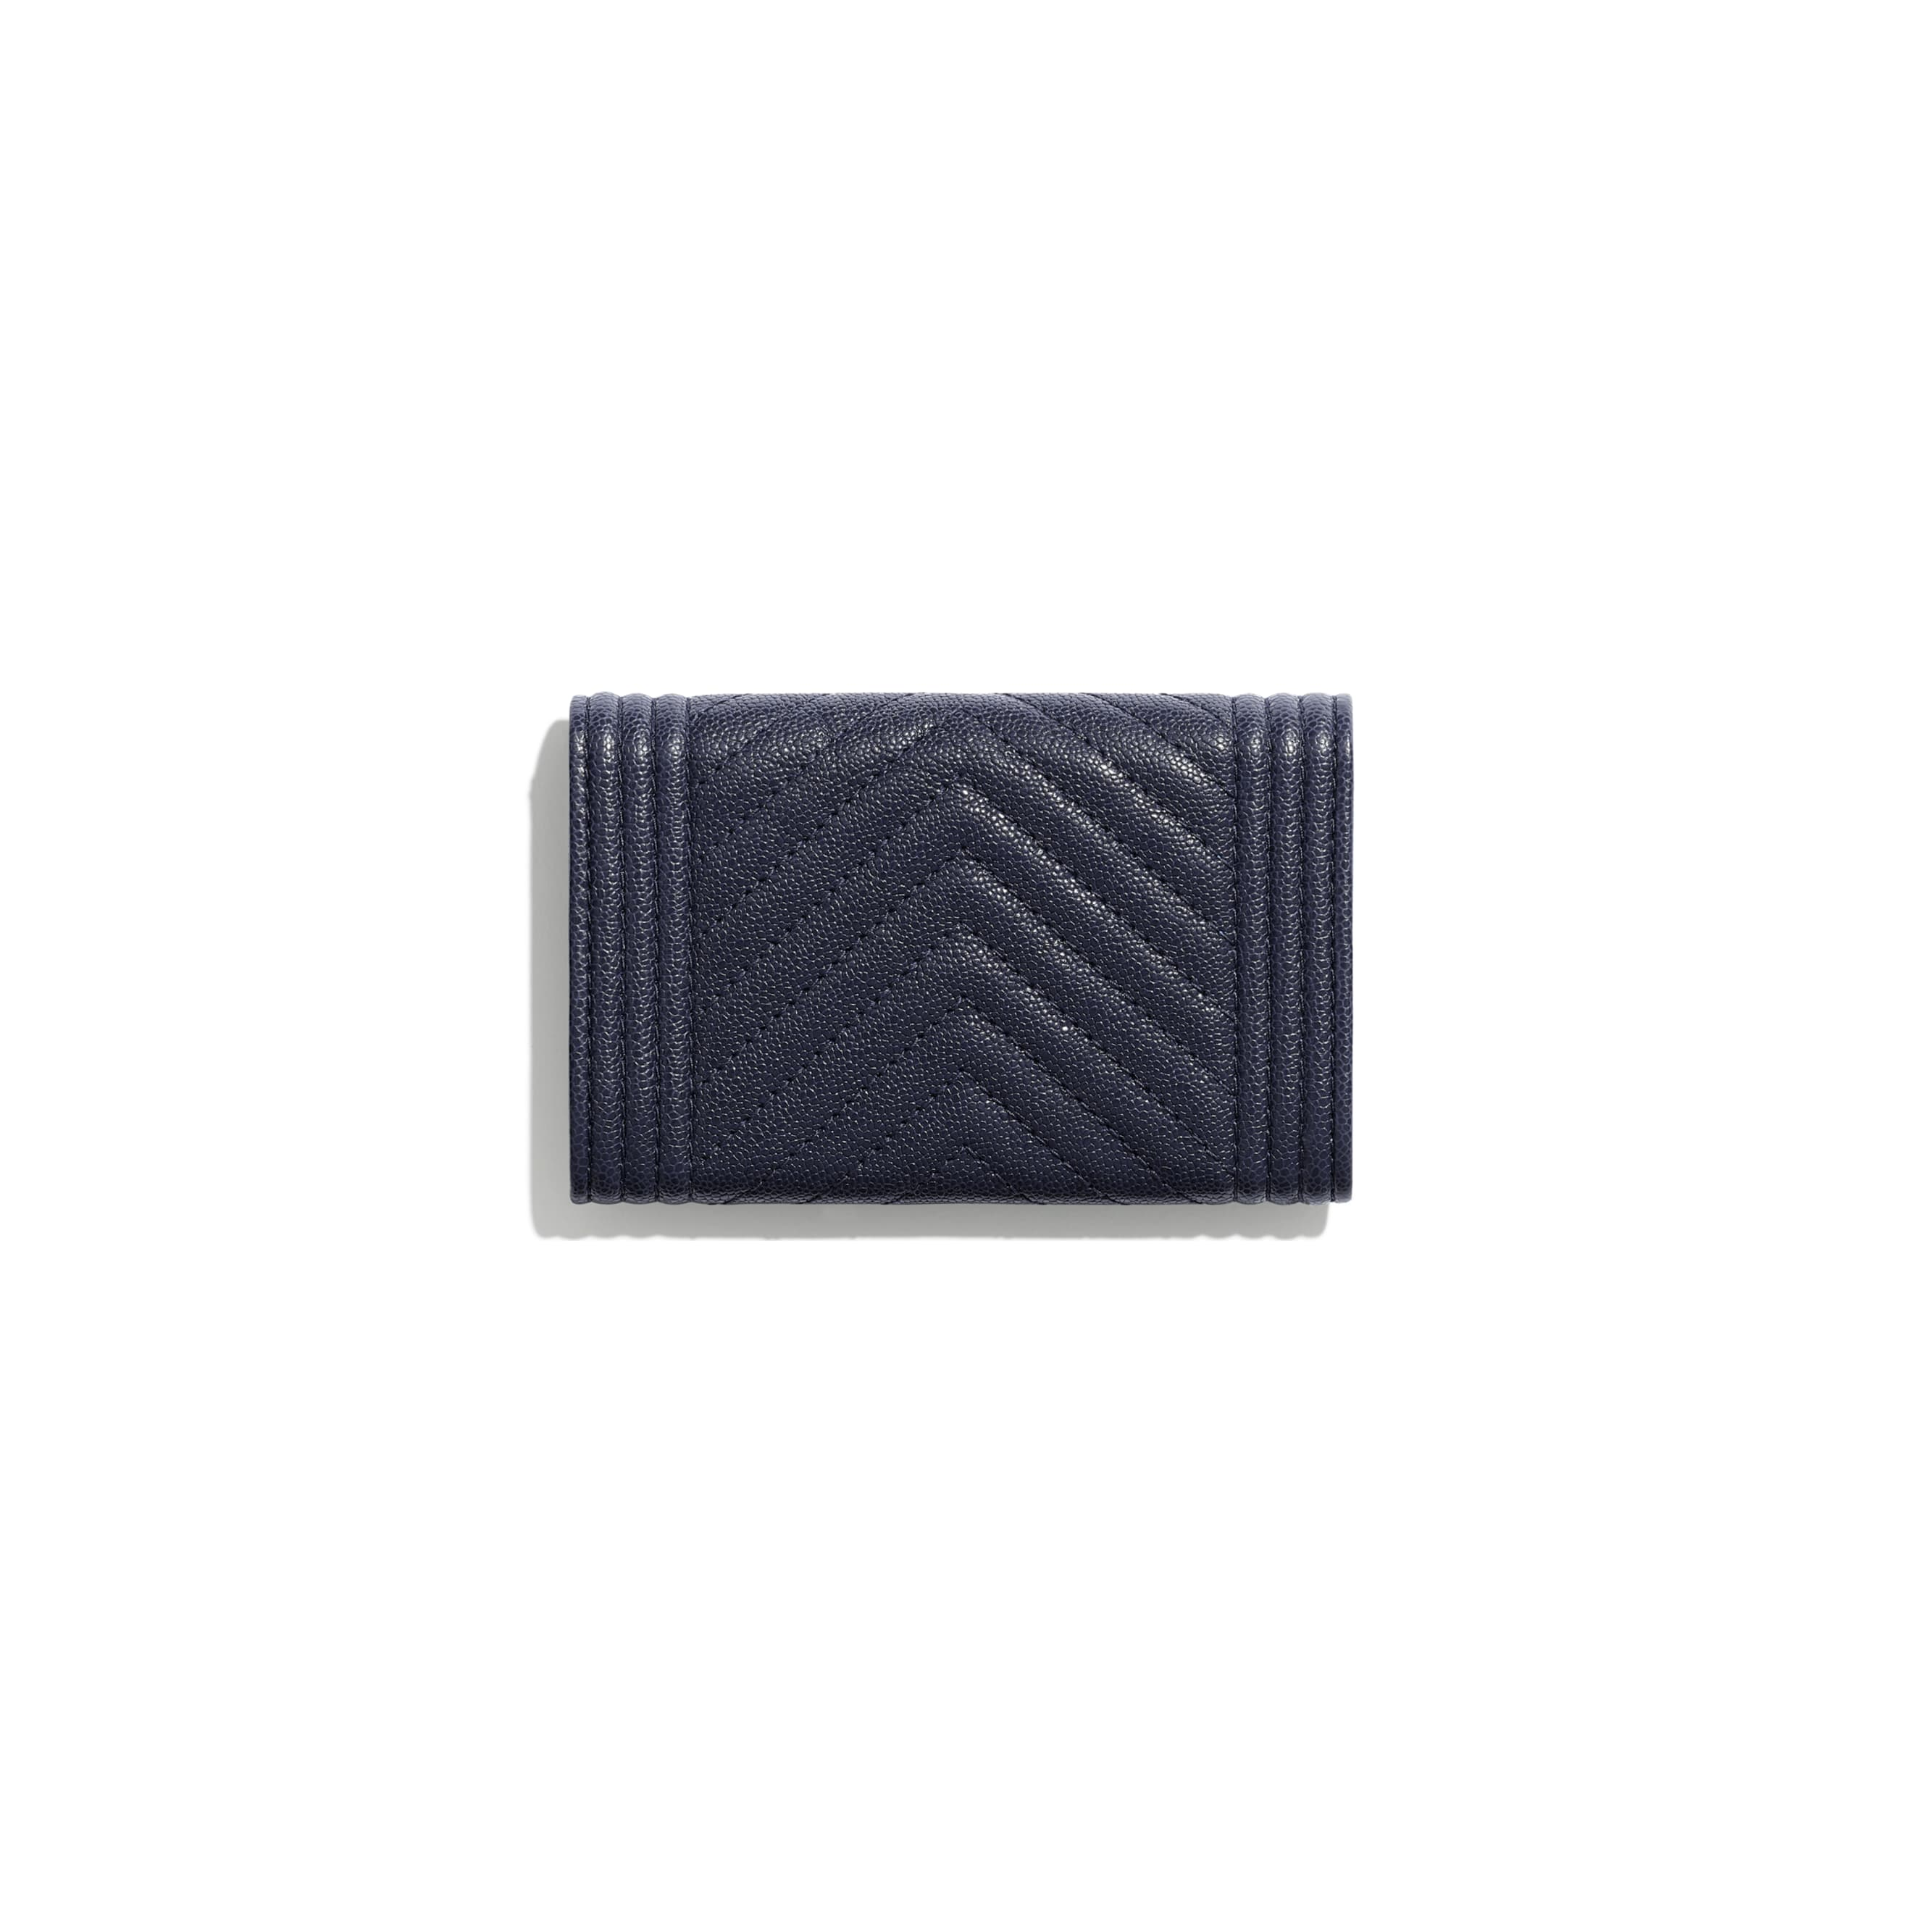 BOY CHANEL Flap Card Holder - Navy Blue - Grained Calfskin & Gold-Tone Metal - Alternative view - see standard sized version